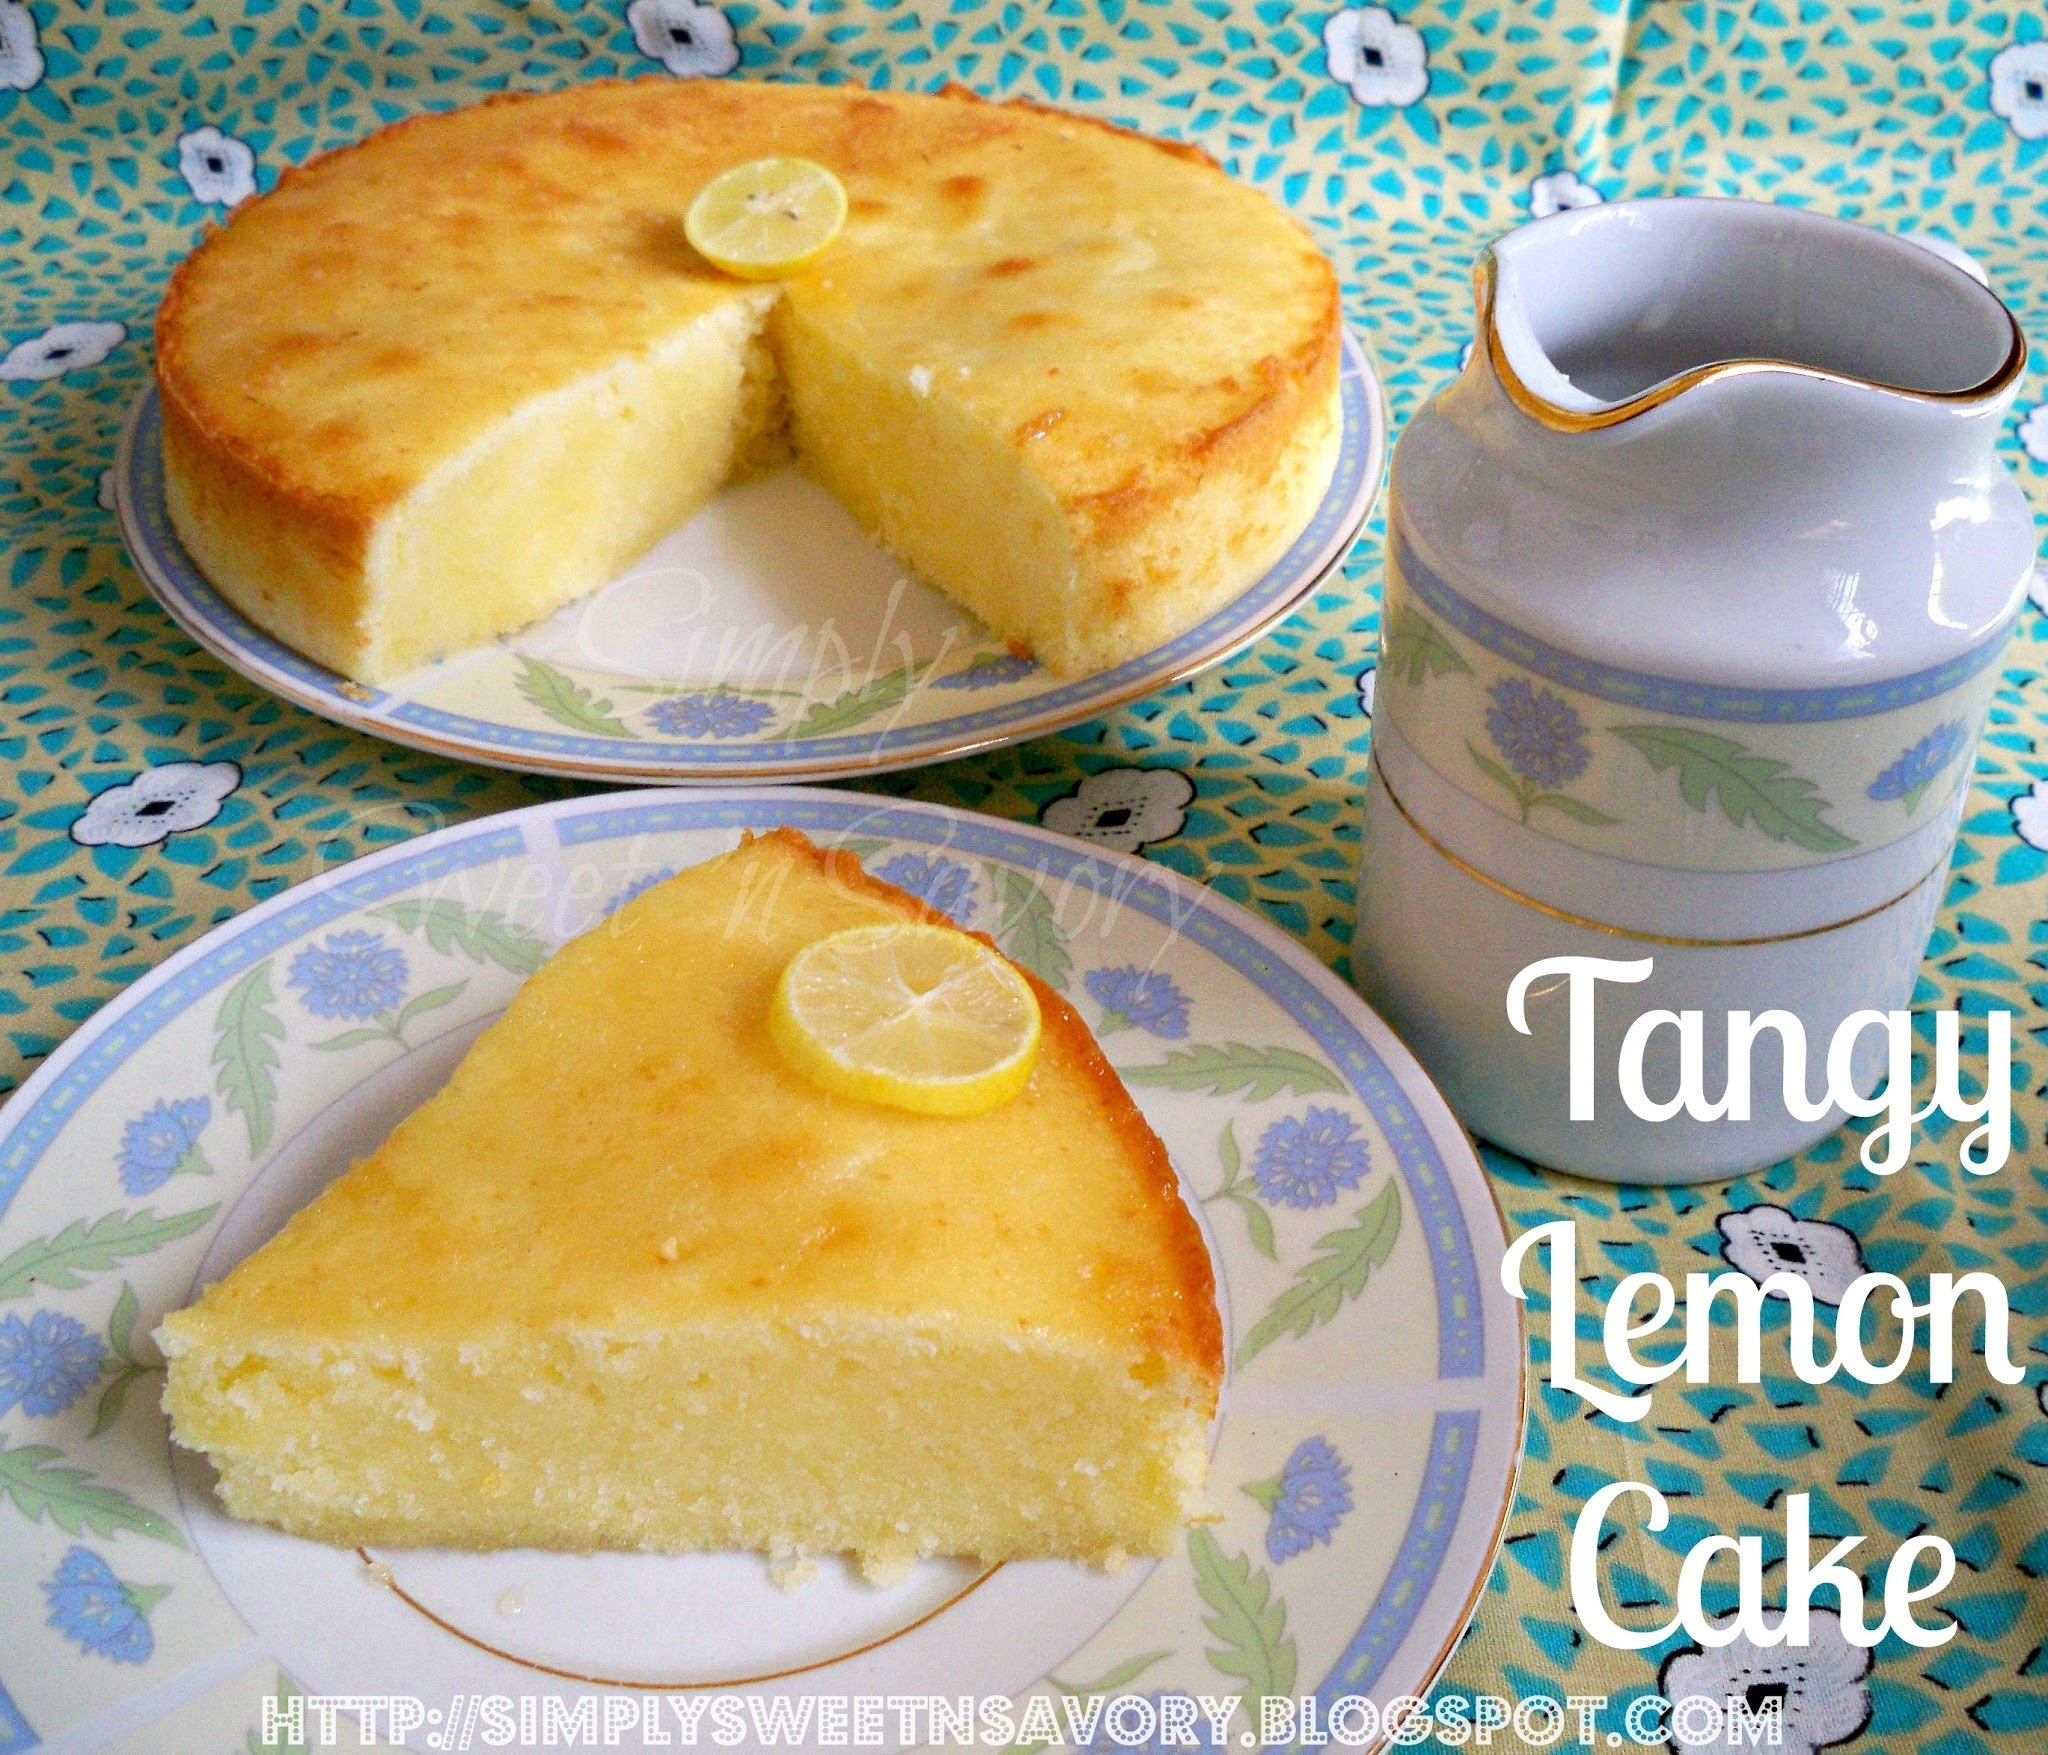 Tangy Lemon Cake